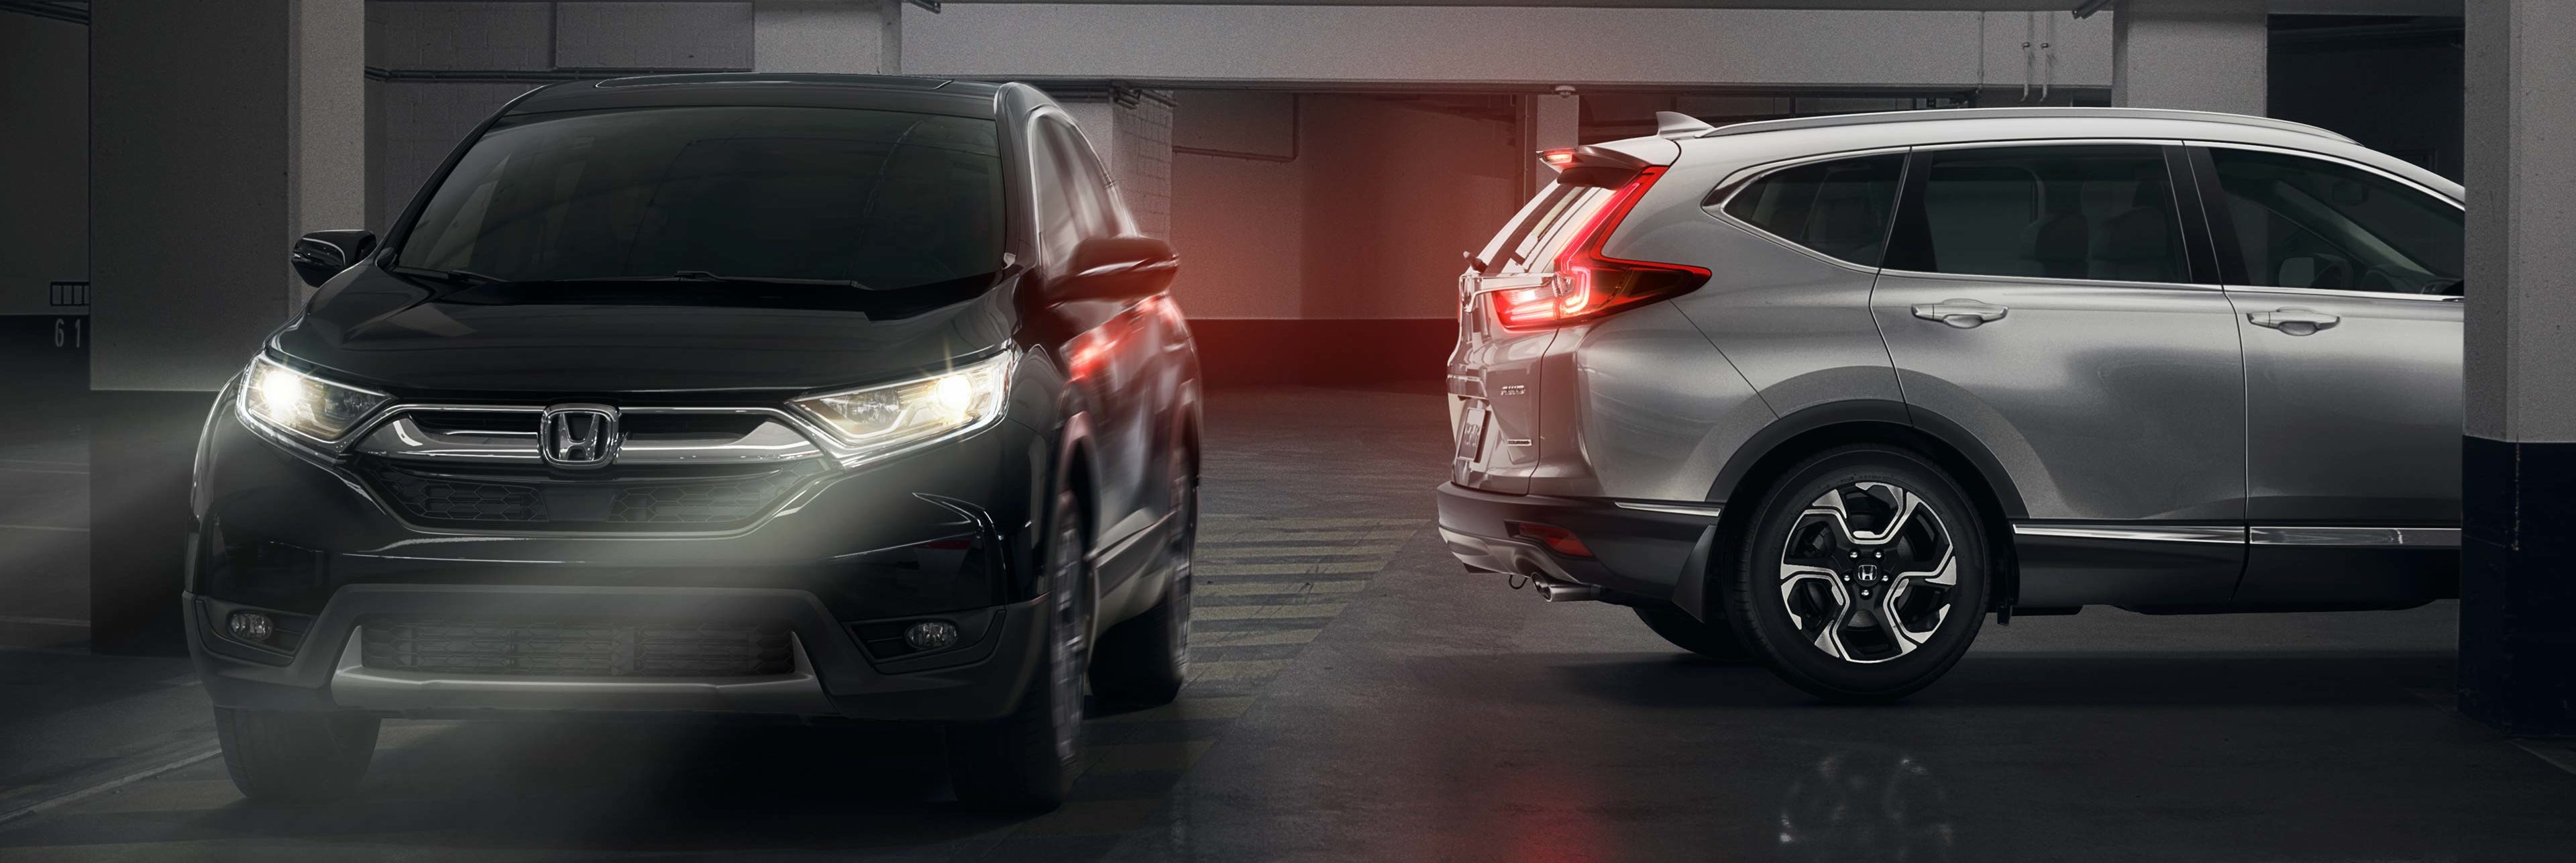 CR-V in parkade with lights on next to side rear profile of another CR-V